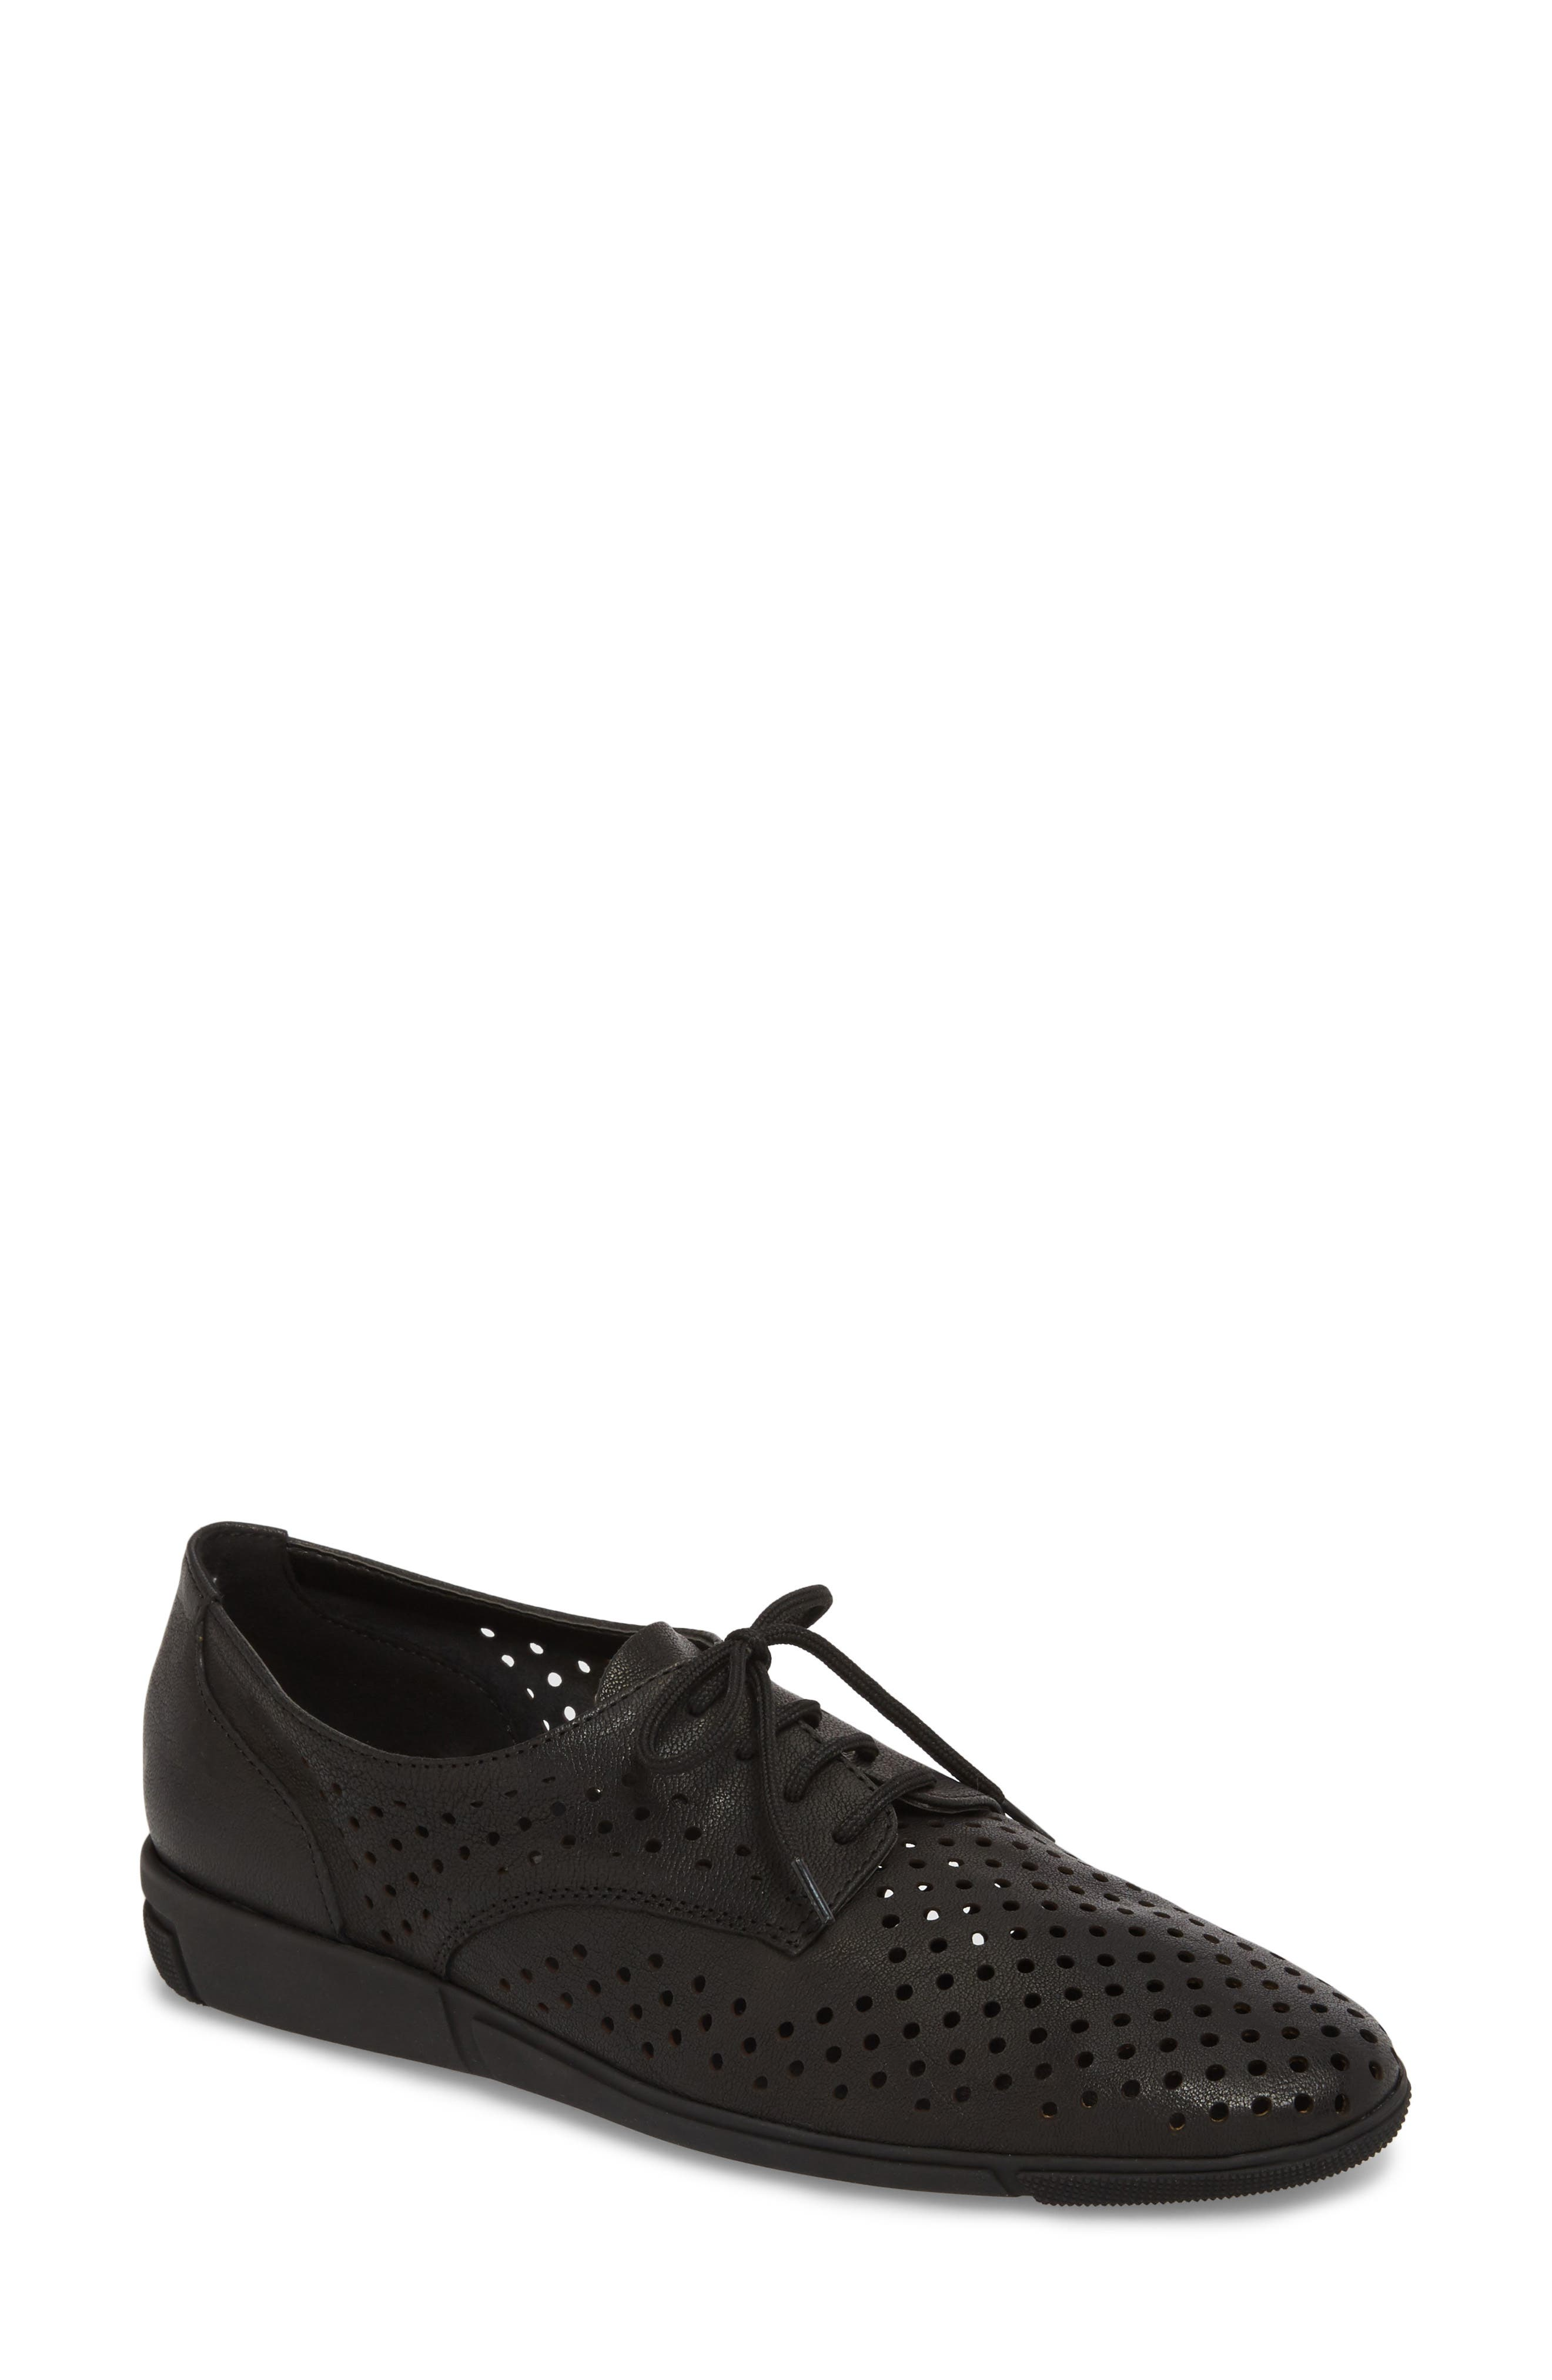 Dirce Perforated Oxford Flat,                         Main,                         color, Black Leather